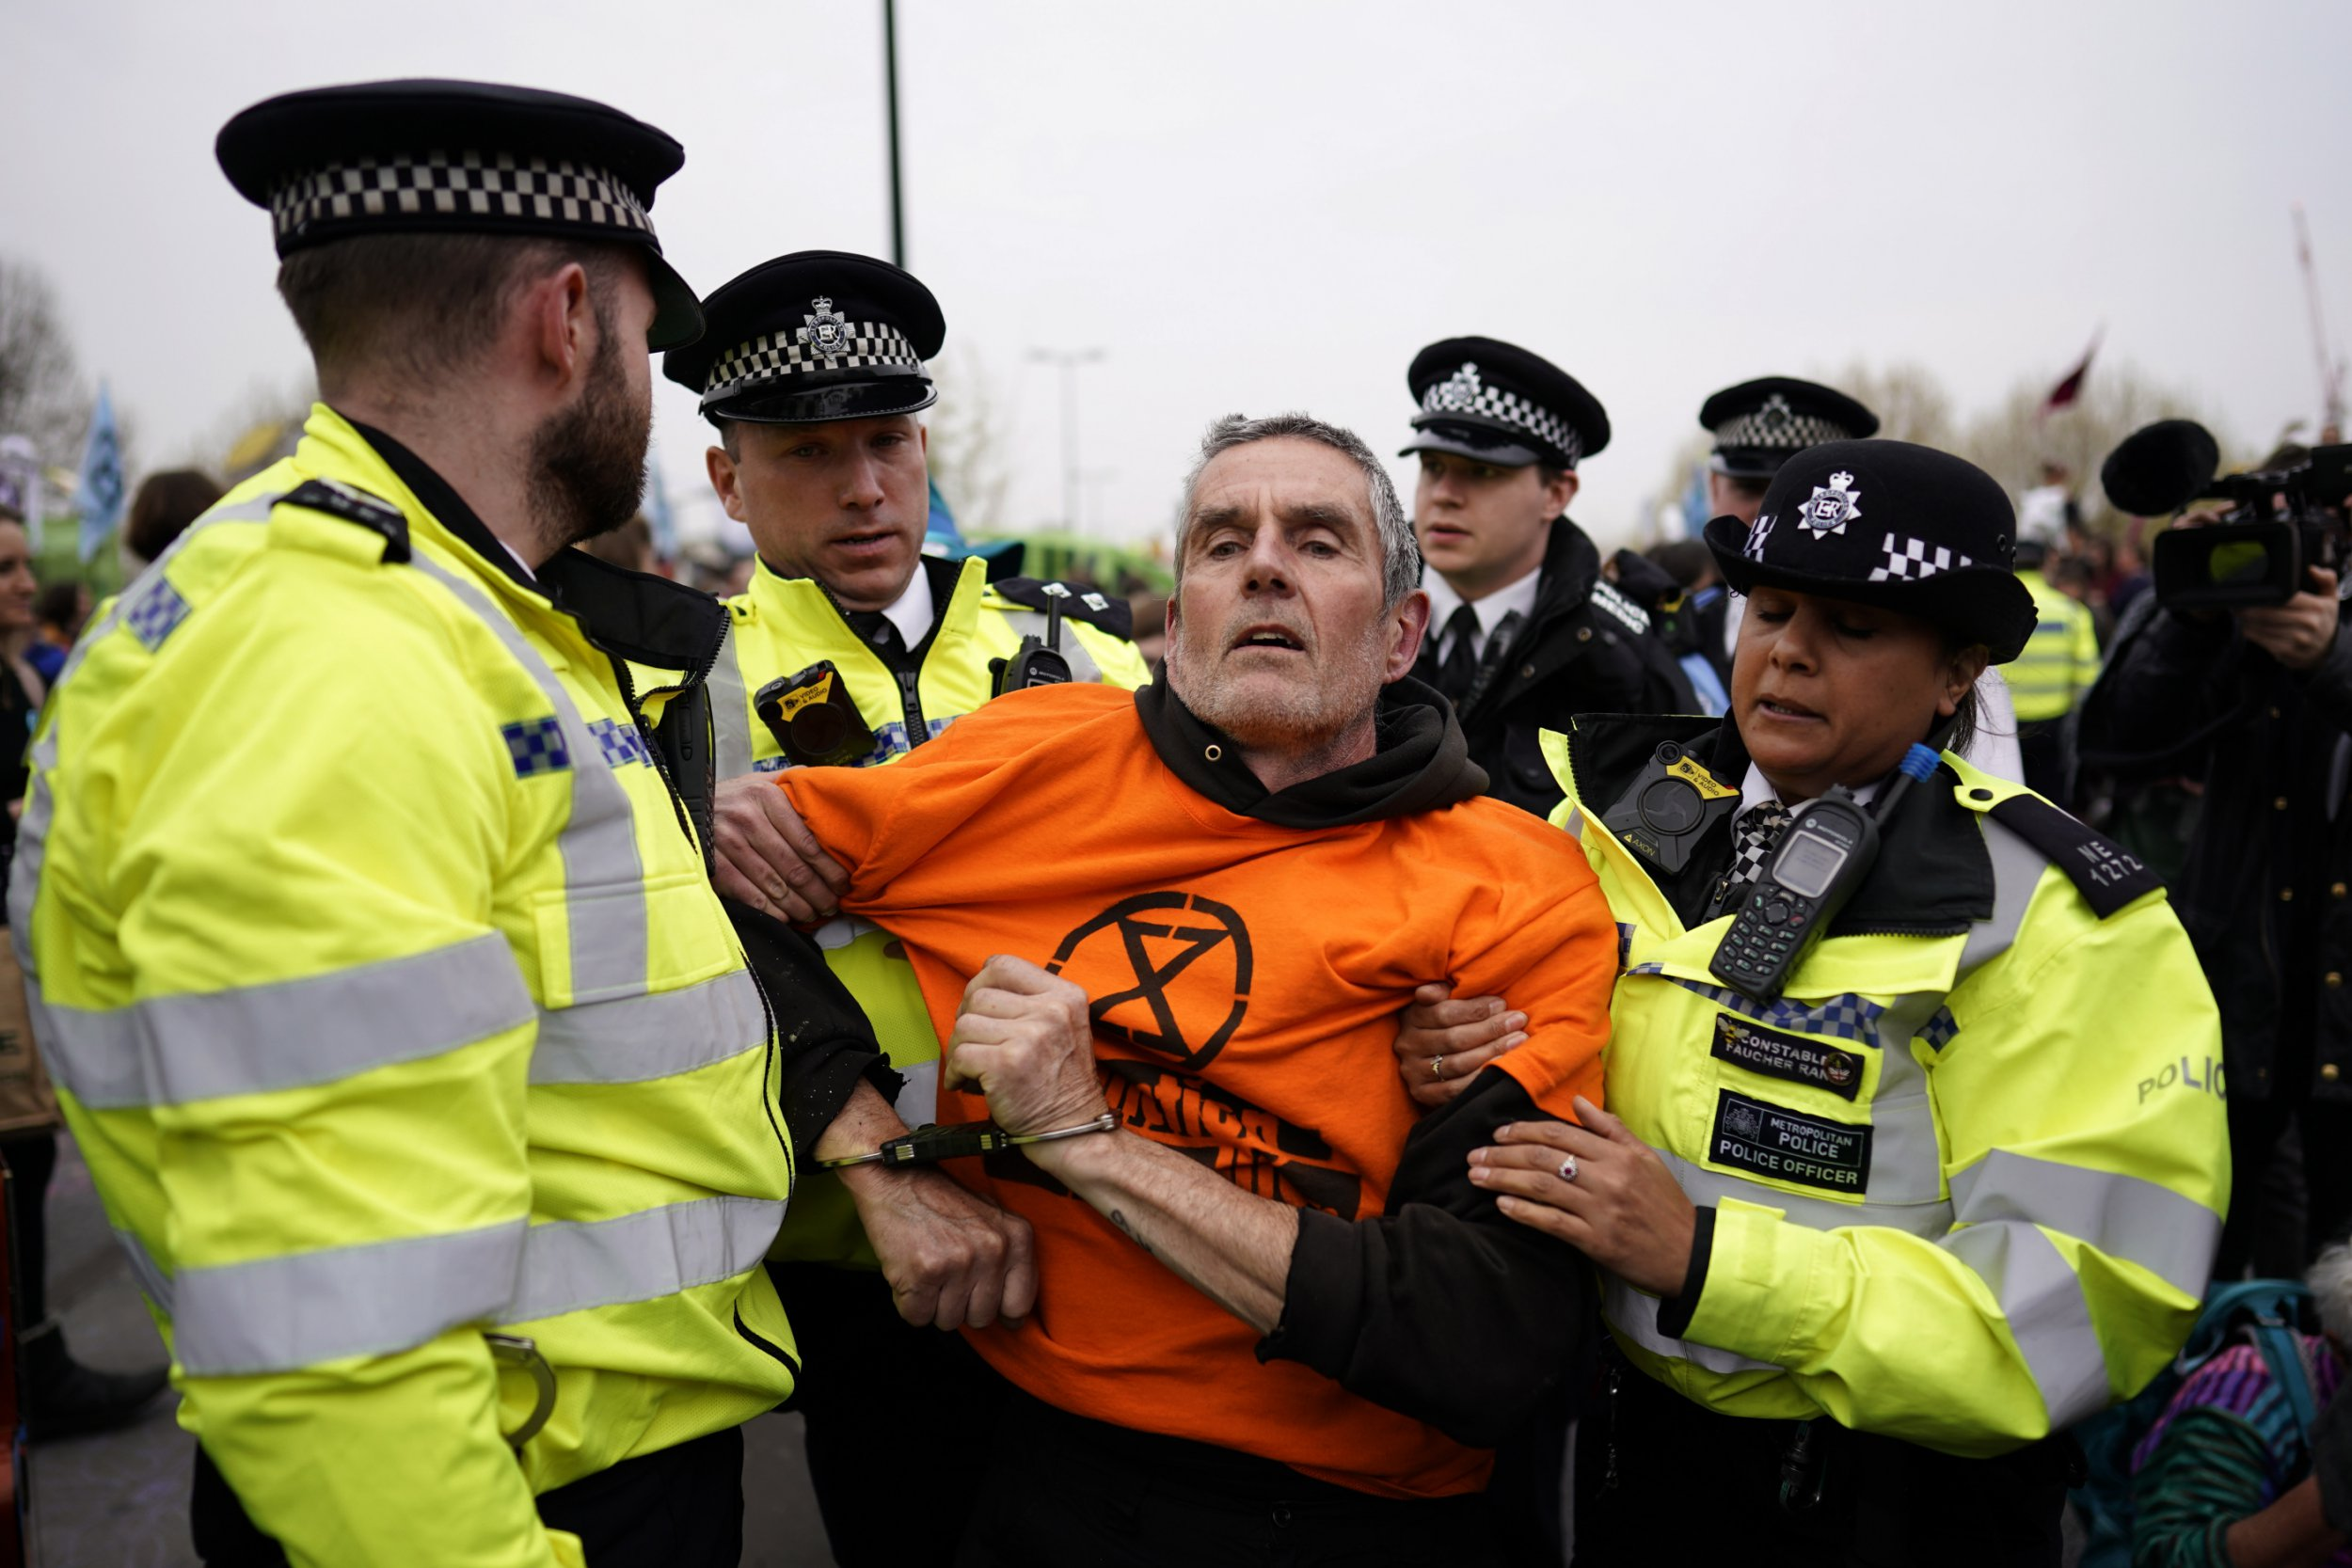 epa07510066 Police remove protesters from the Extinction Rebellion campaign group from Waterloo Bridge, Central London, Britain, 16 April 2019. The Extinction Rebellion are holding a number of protests across London to draw attention to climate change. EPA/WILL OLIVER